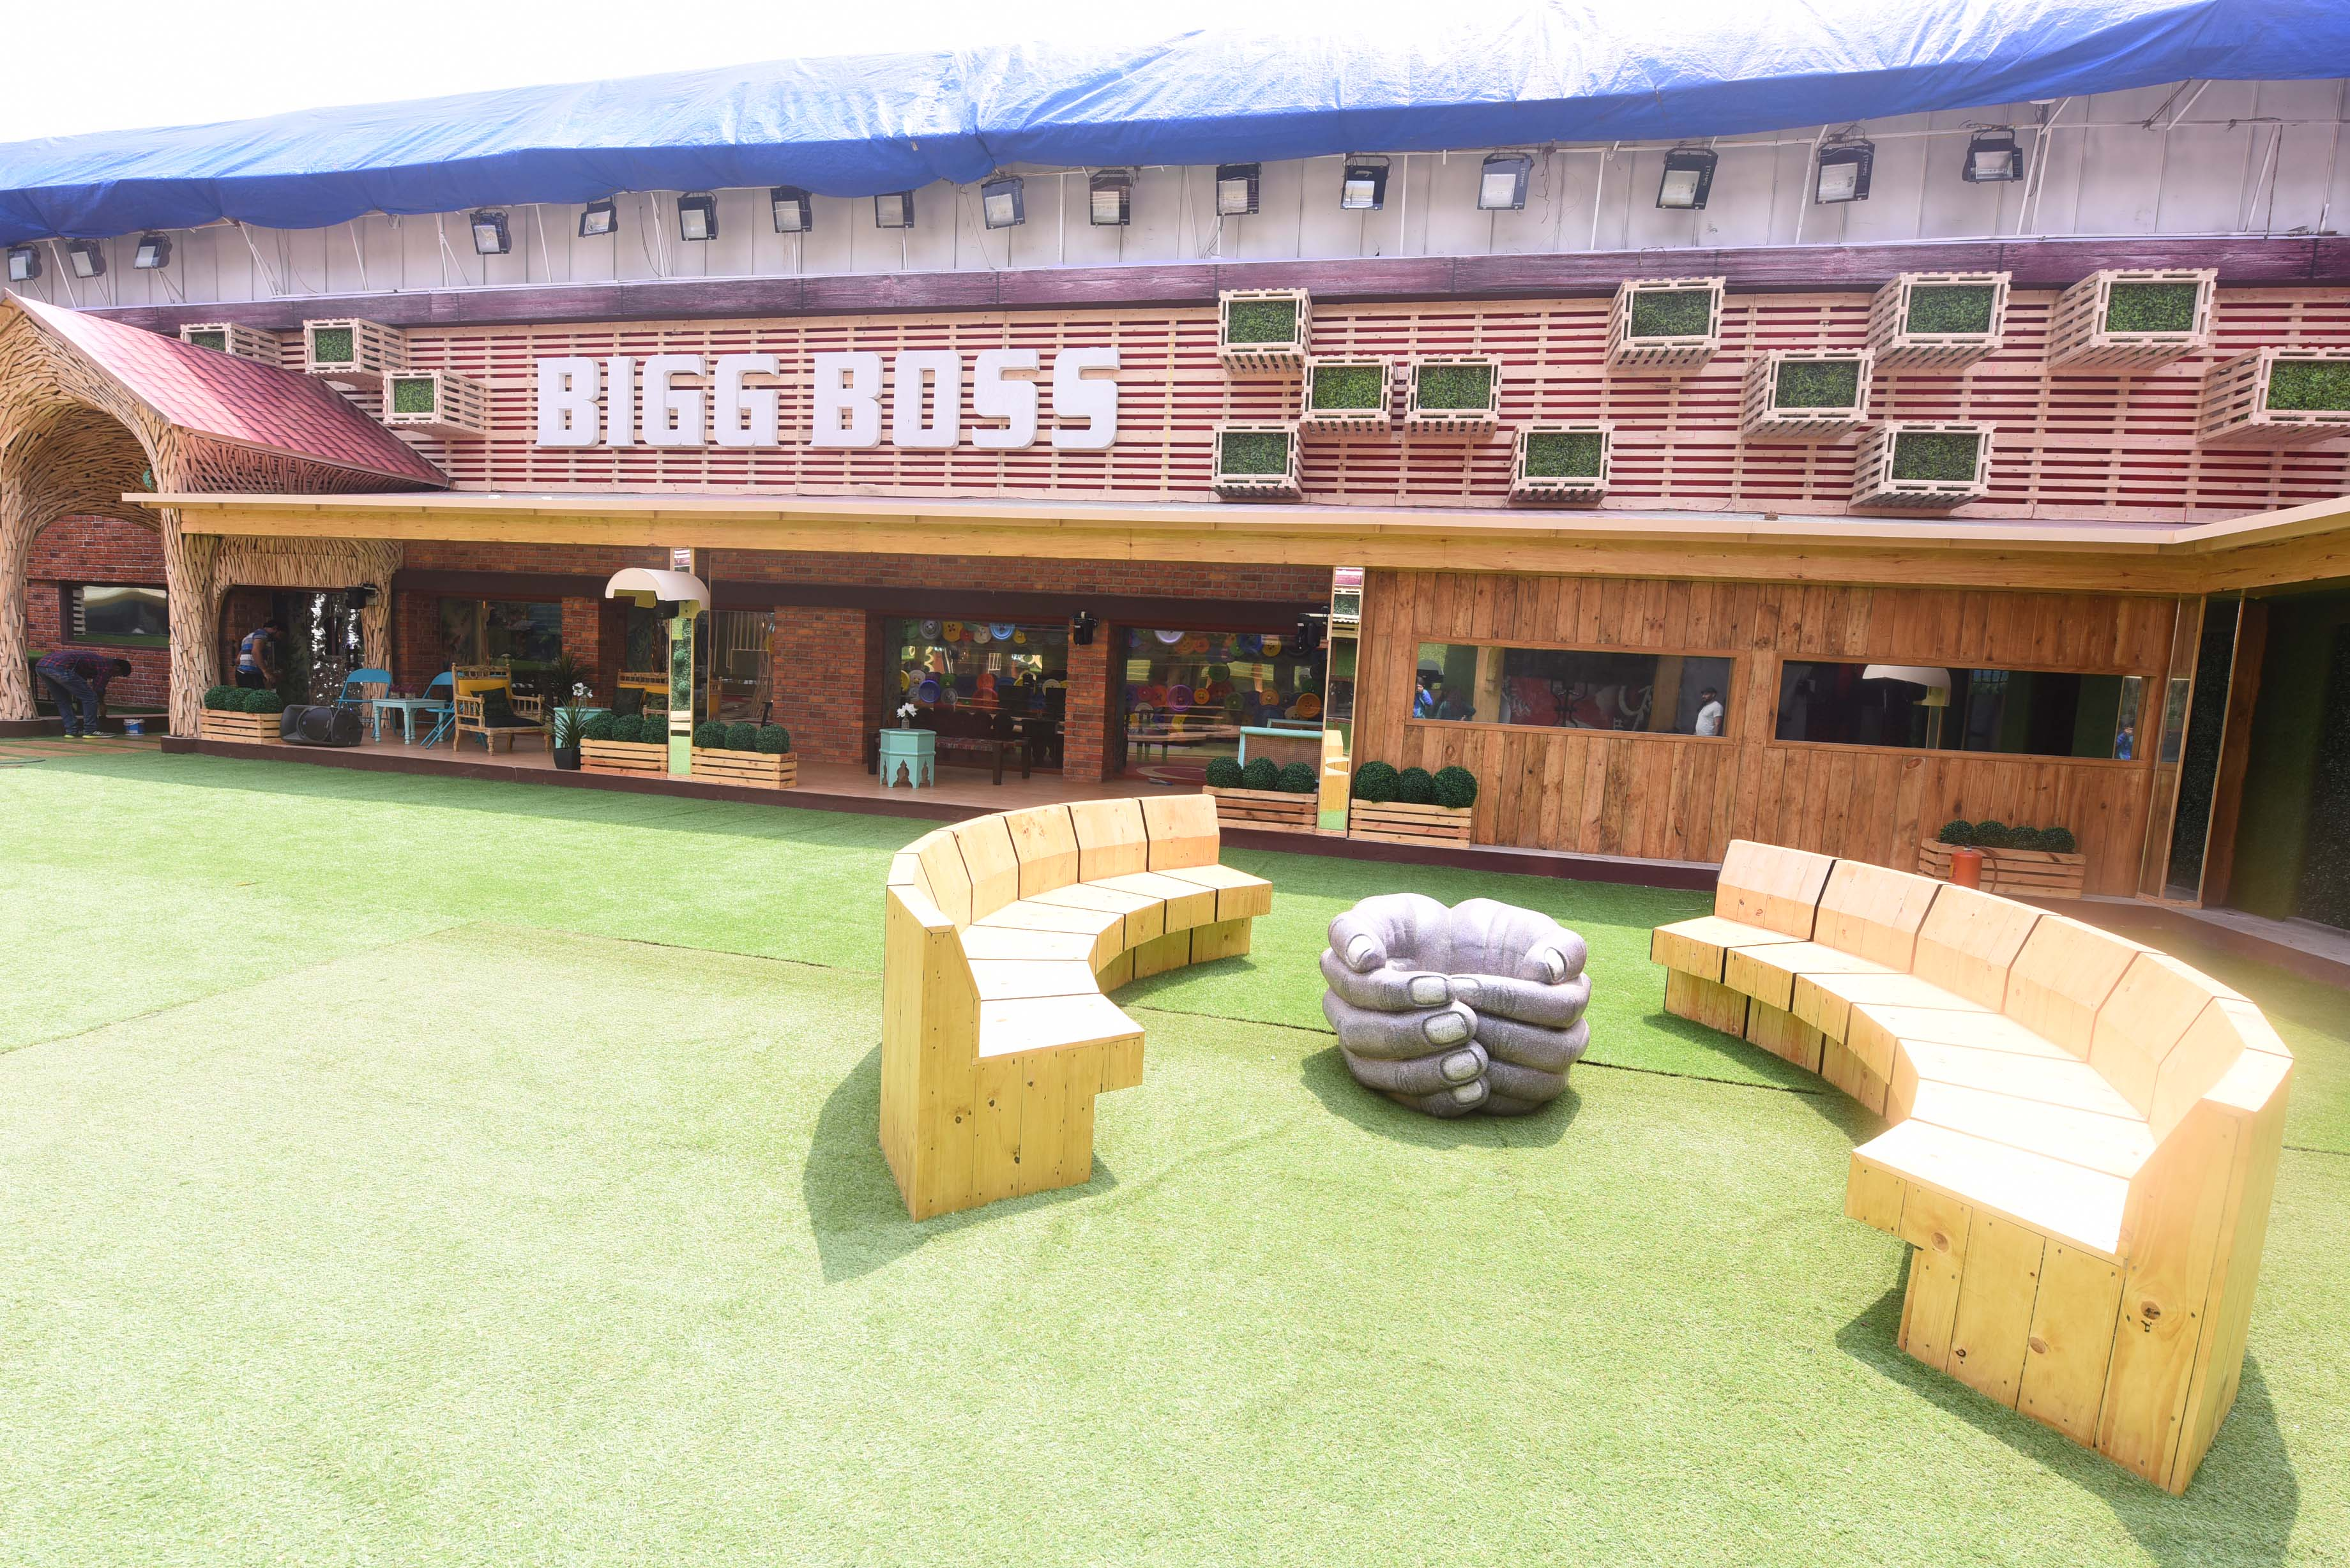 Bigg Boss 11: The house looks grander than ever